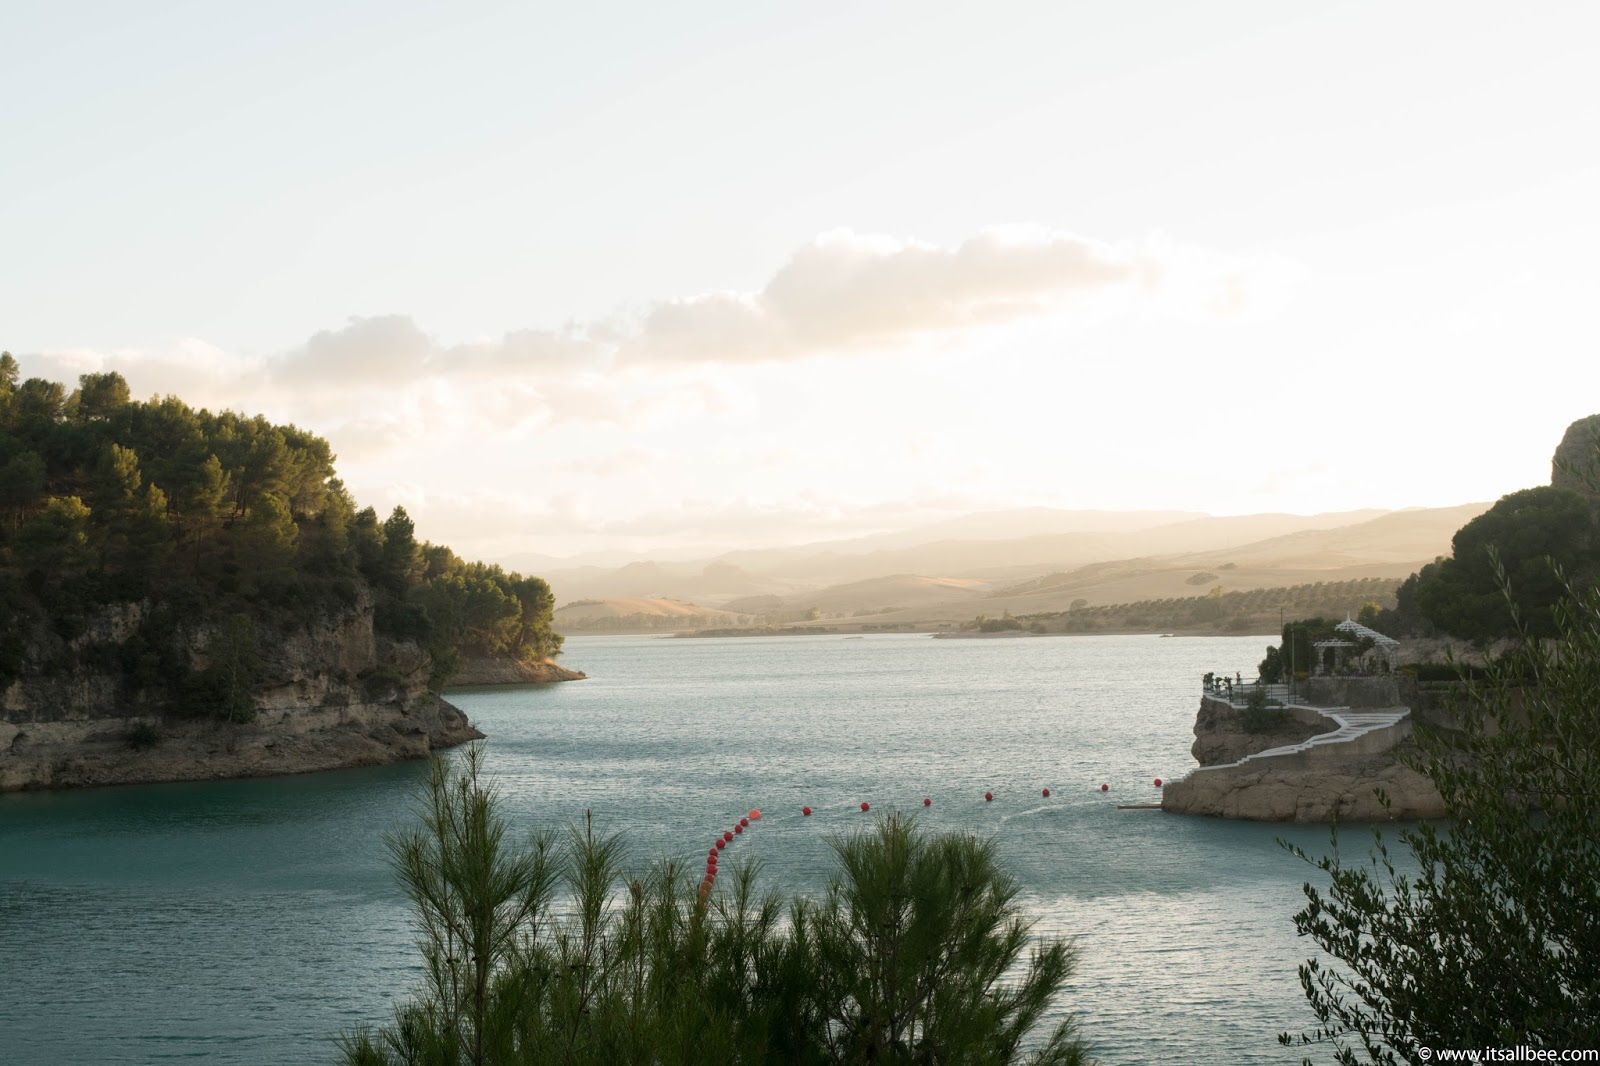 El Chorro Malaga | The Best Spot To Watch The Sunset In Andalucia